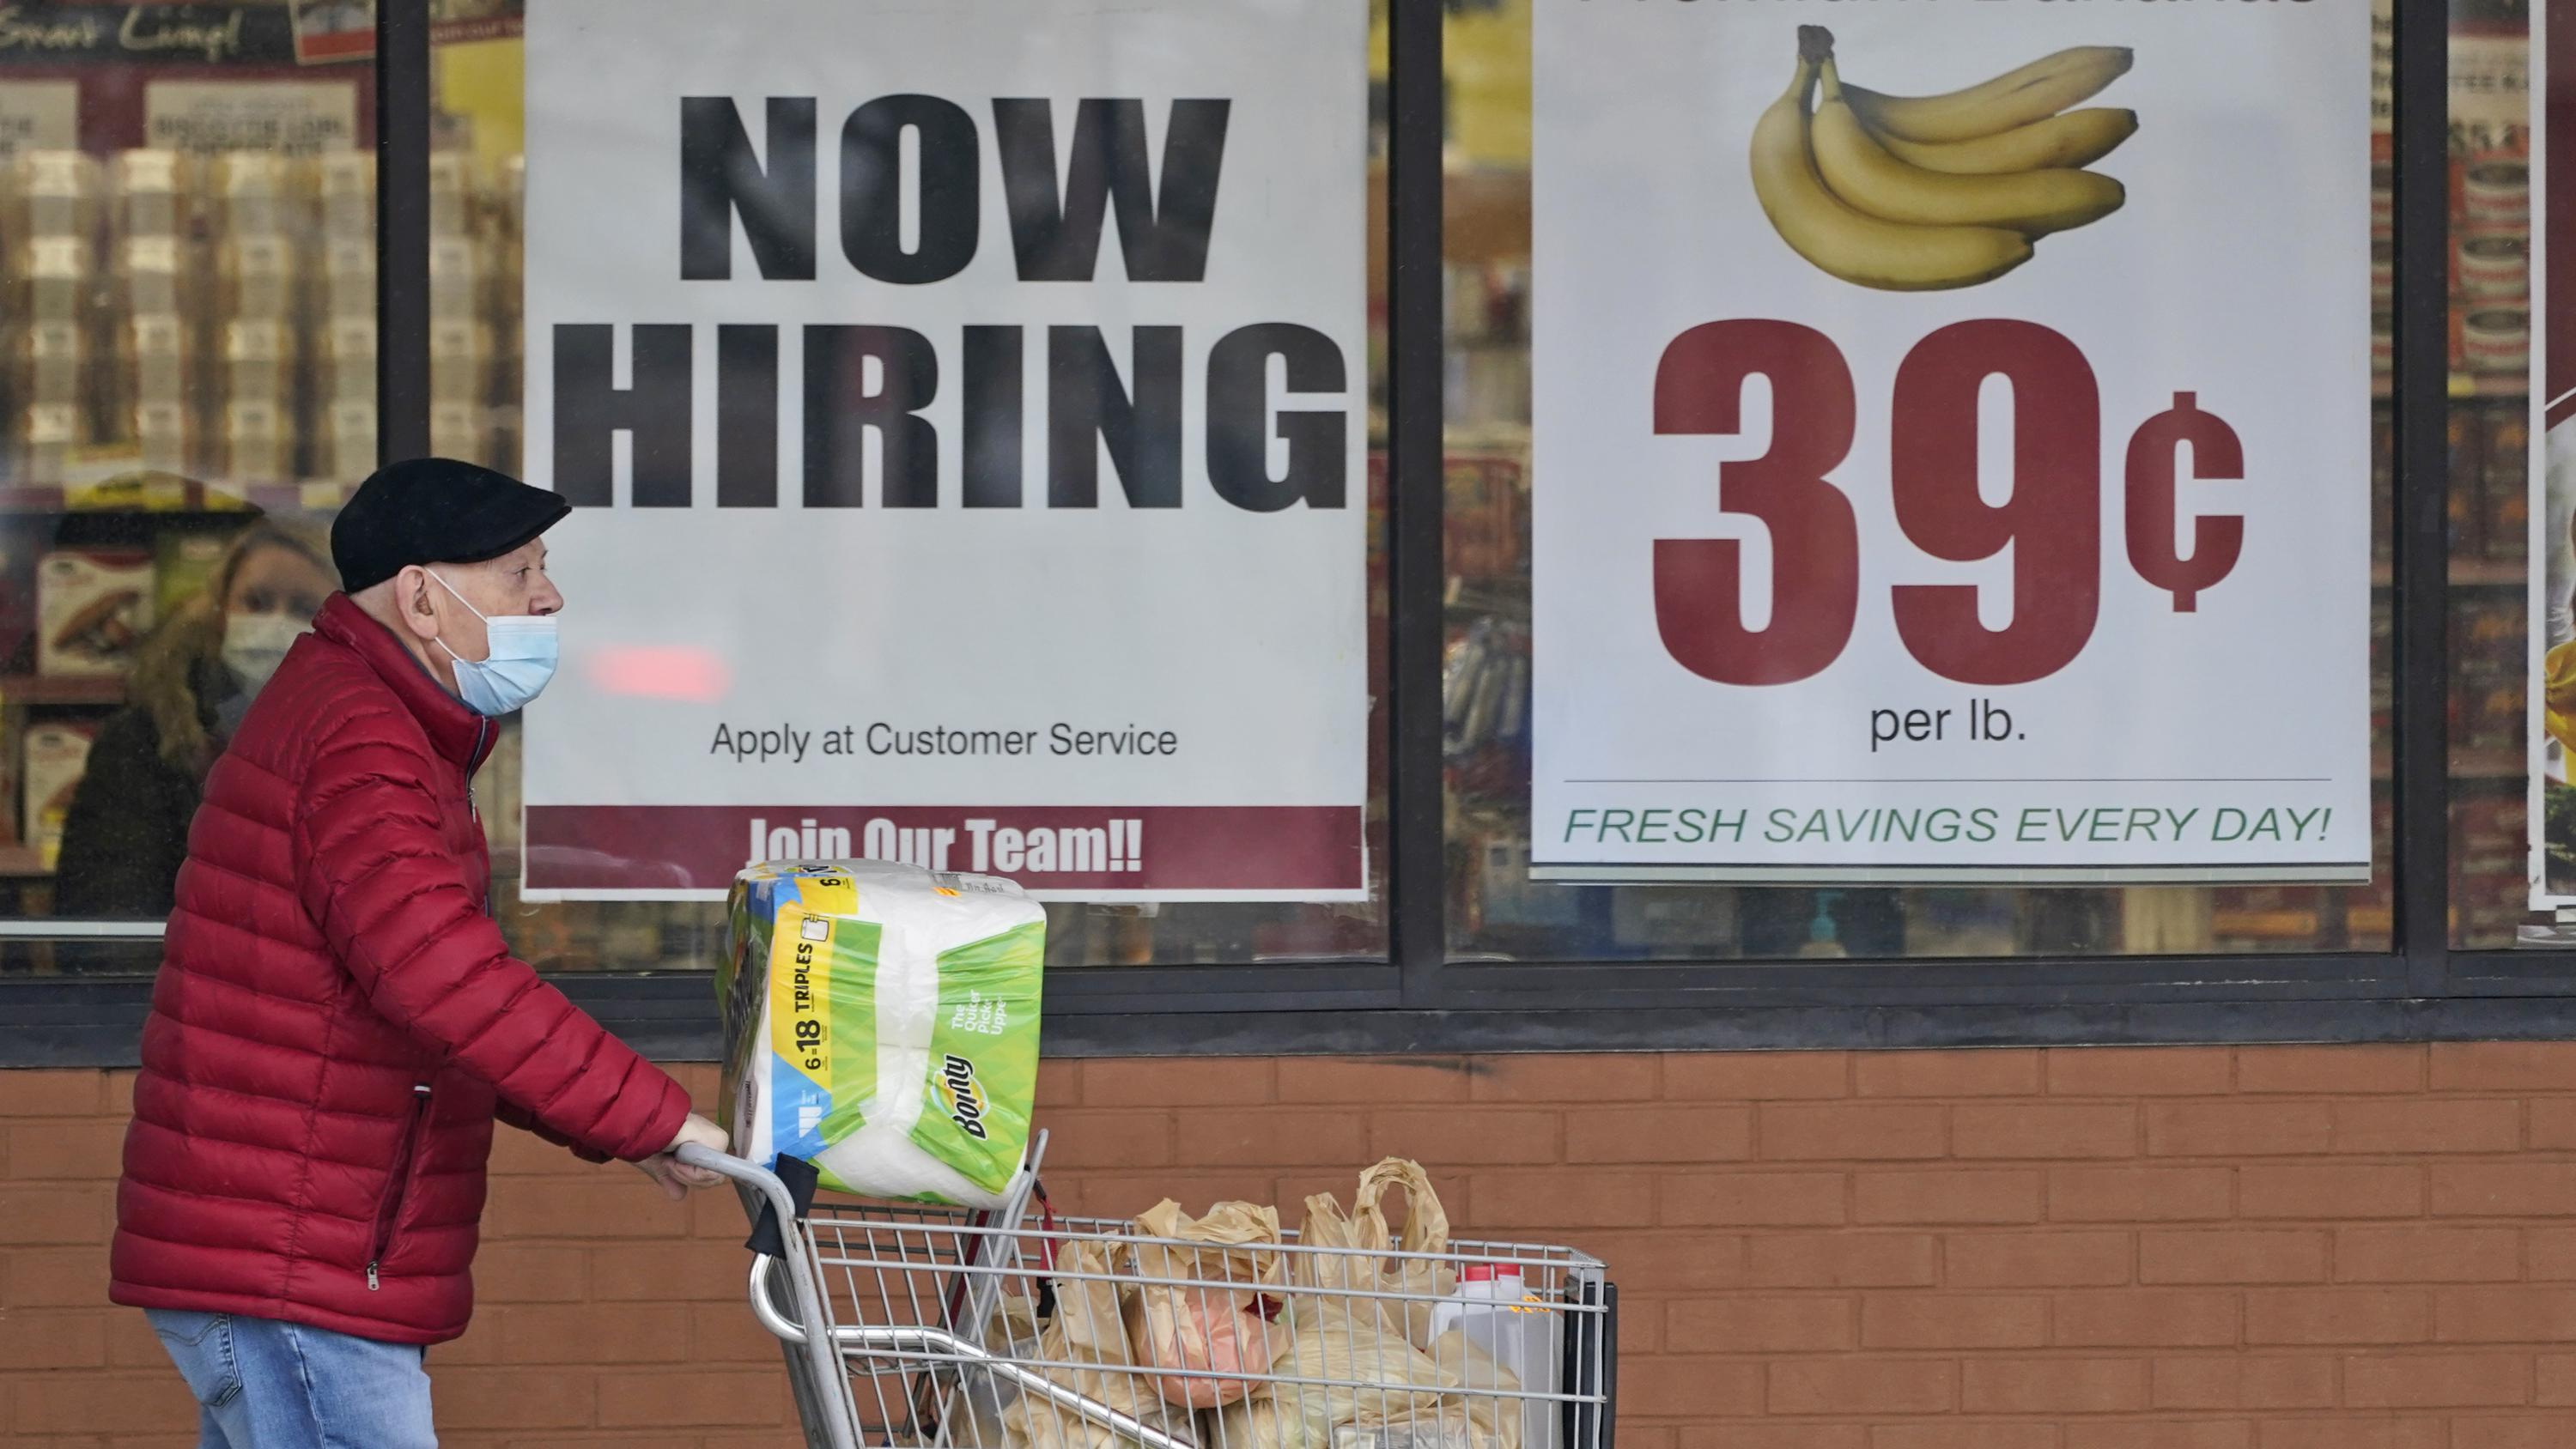 WASHINGTON (AP) — The recovery of America's job market hit a pause last month as many businesses — from restaurants and hotels to factories and construction companies — struggled to